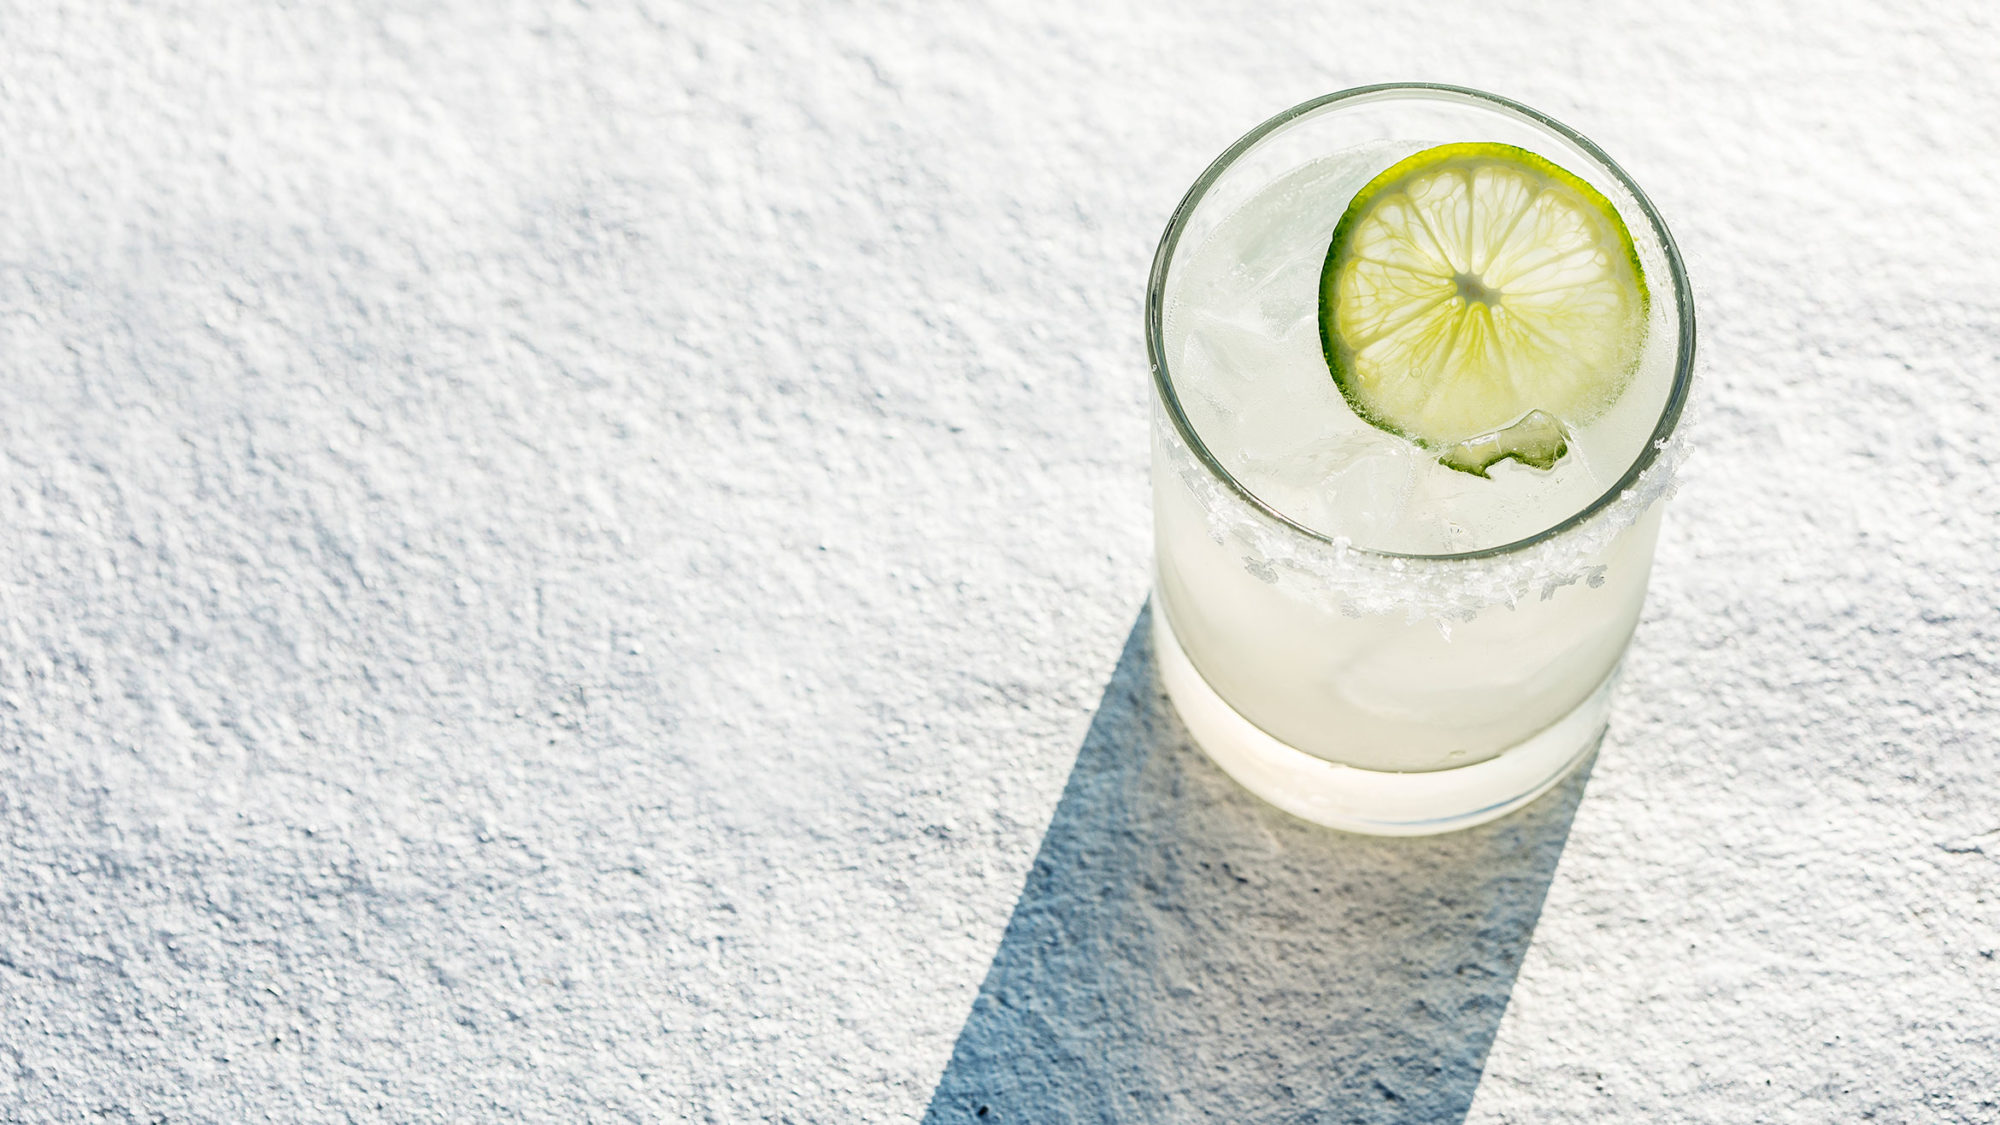 Article-Ultimate-Best-Margarita-Recipe-Tequila-Cocktail